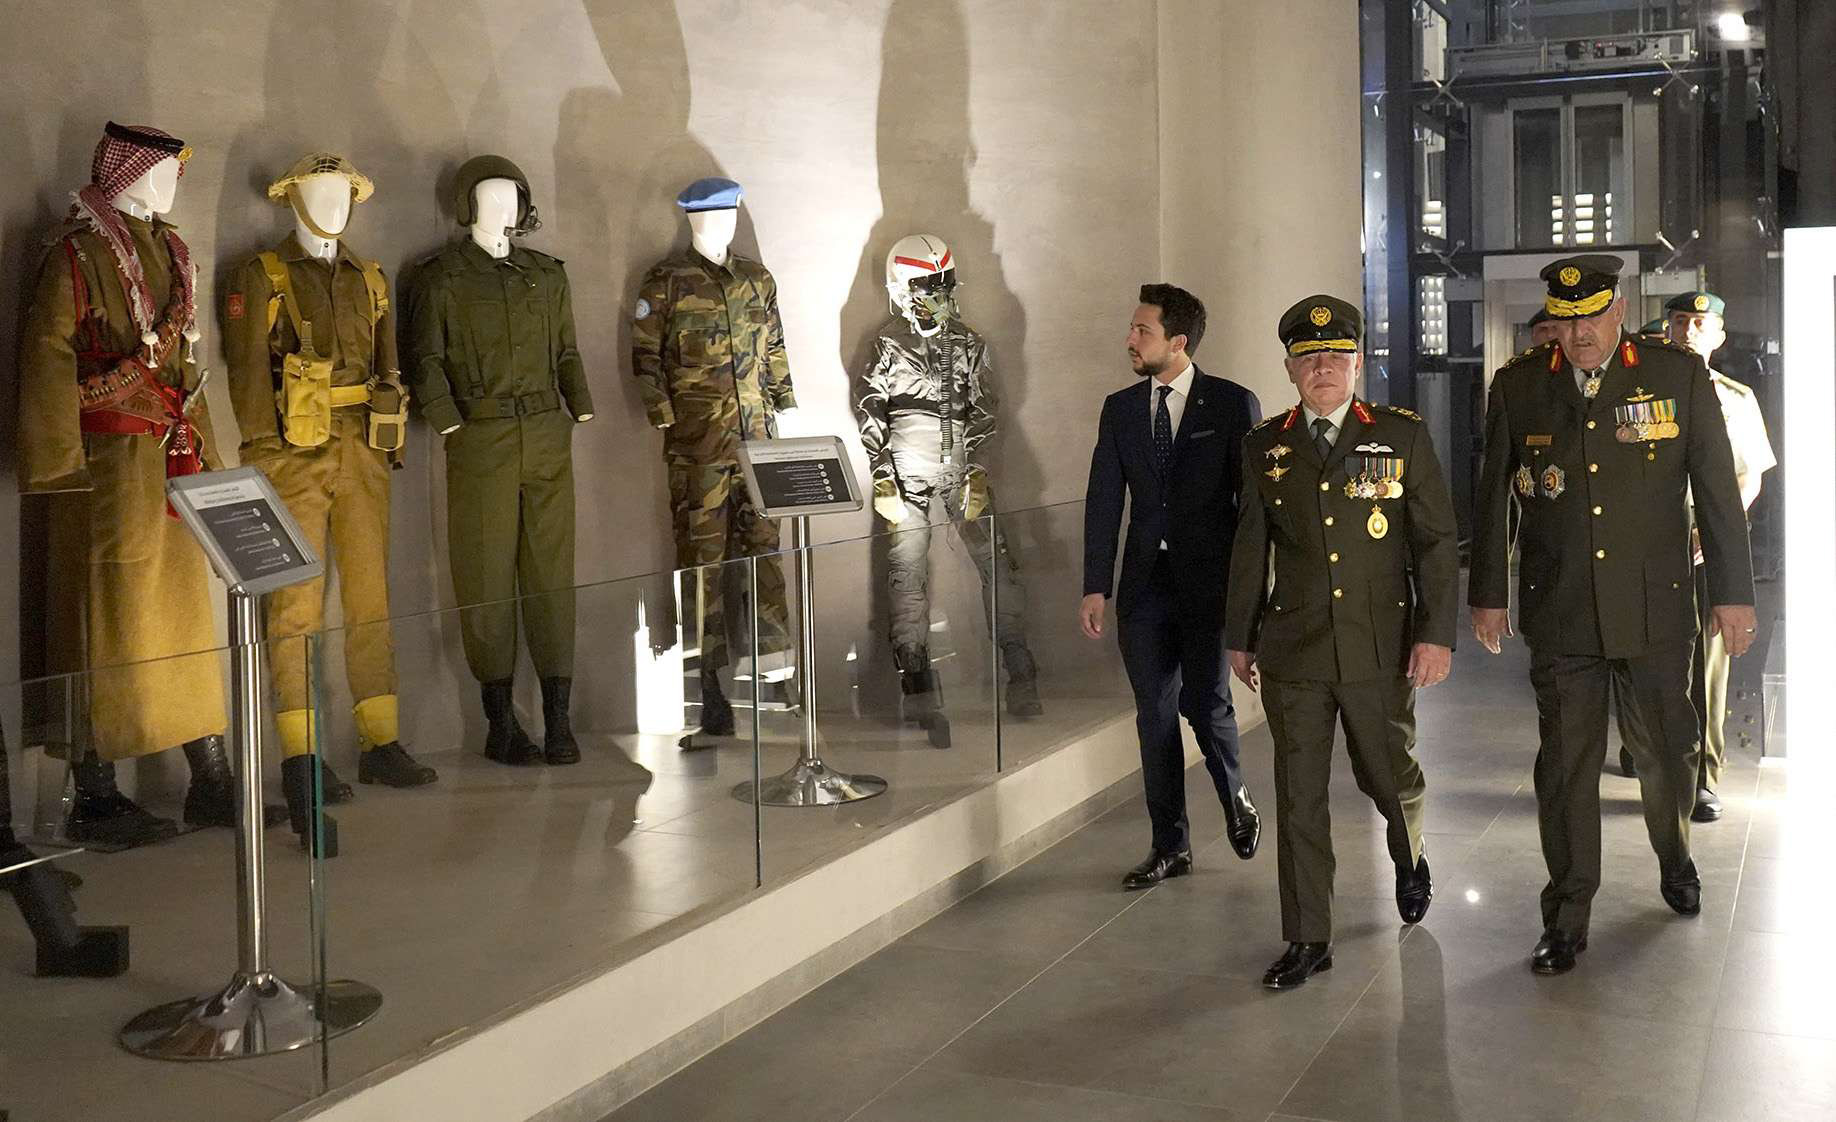 Jordanian King Abdullah II (2nd-R) and Crown Prince Hussein (3rd-R) view historical battle dress as they visit the Martyrs' Memorial museum in Amman, June 10. (Jordanian Royal Palace)